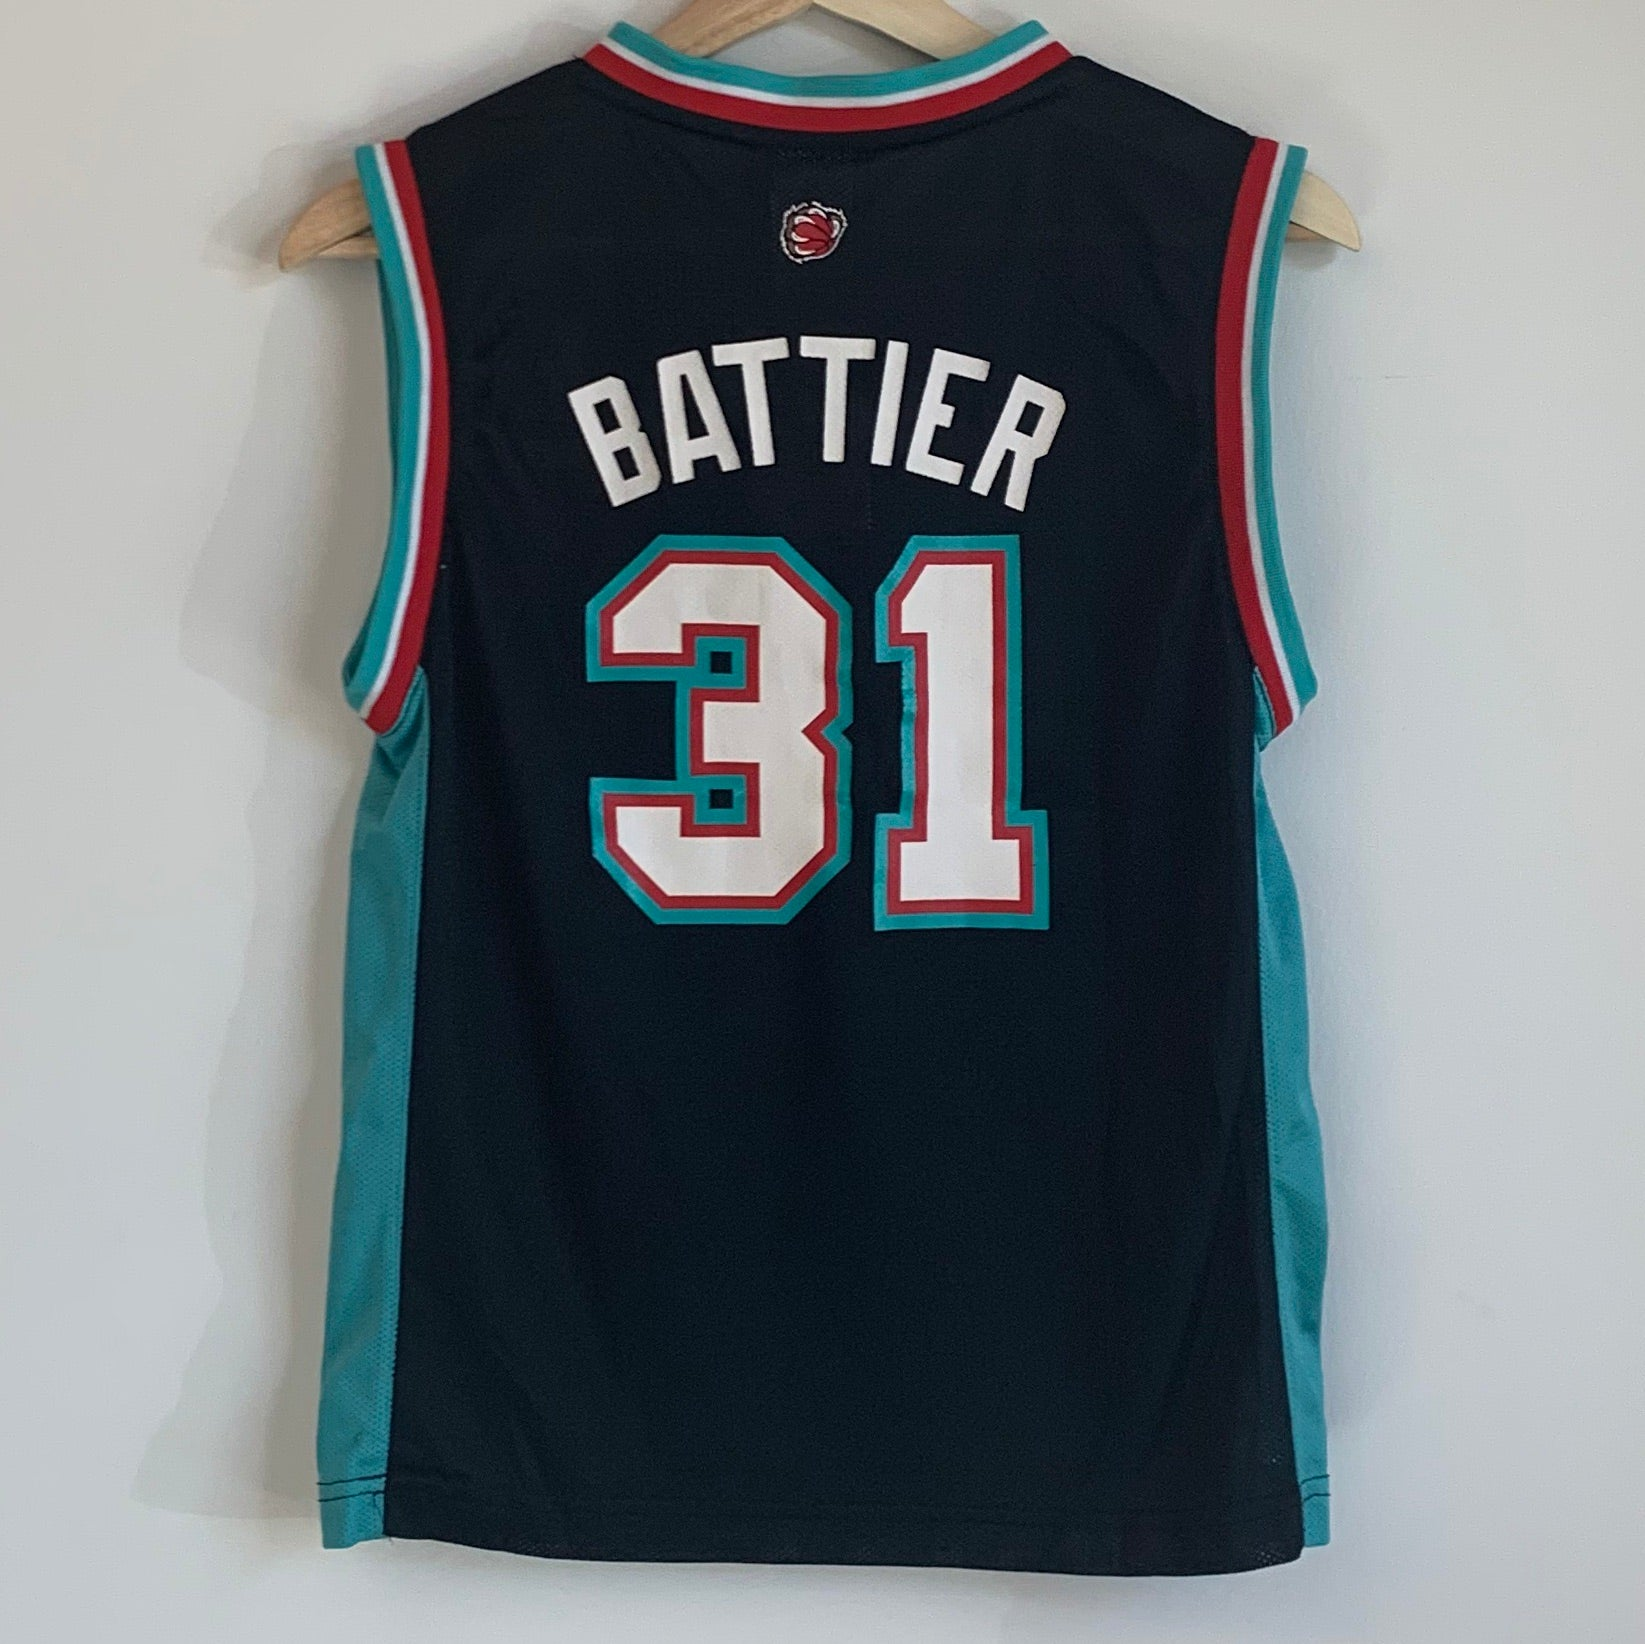 Reebok Shane Battier Memphis Grizzlies Black Youth Basketball Jersey